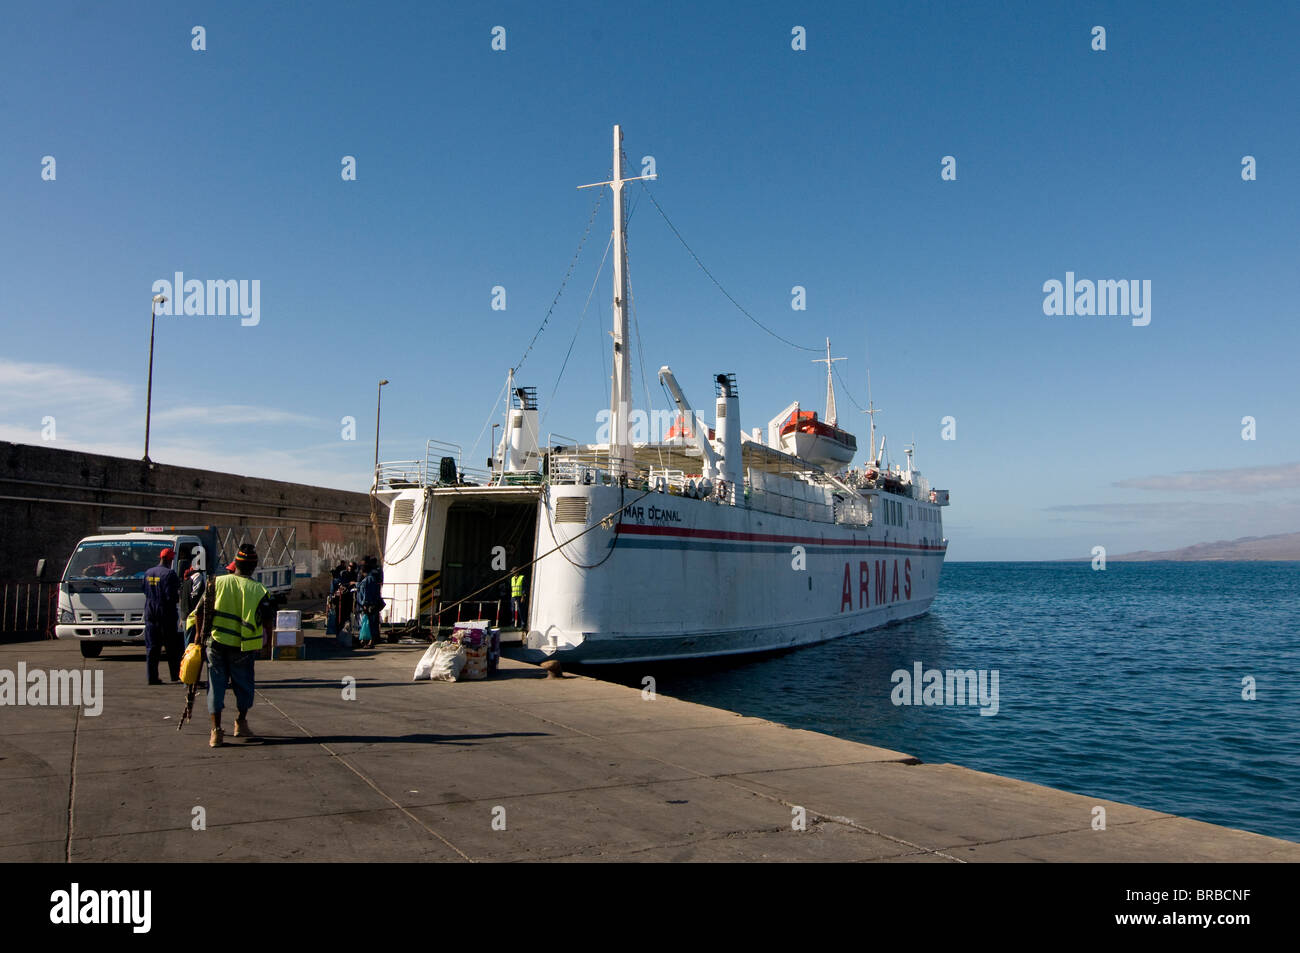 Ferry in the harbor of Porto Novo, Santo Antao, Cape Verde, Atlantic - Stock Image